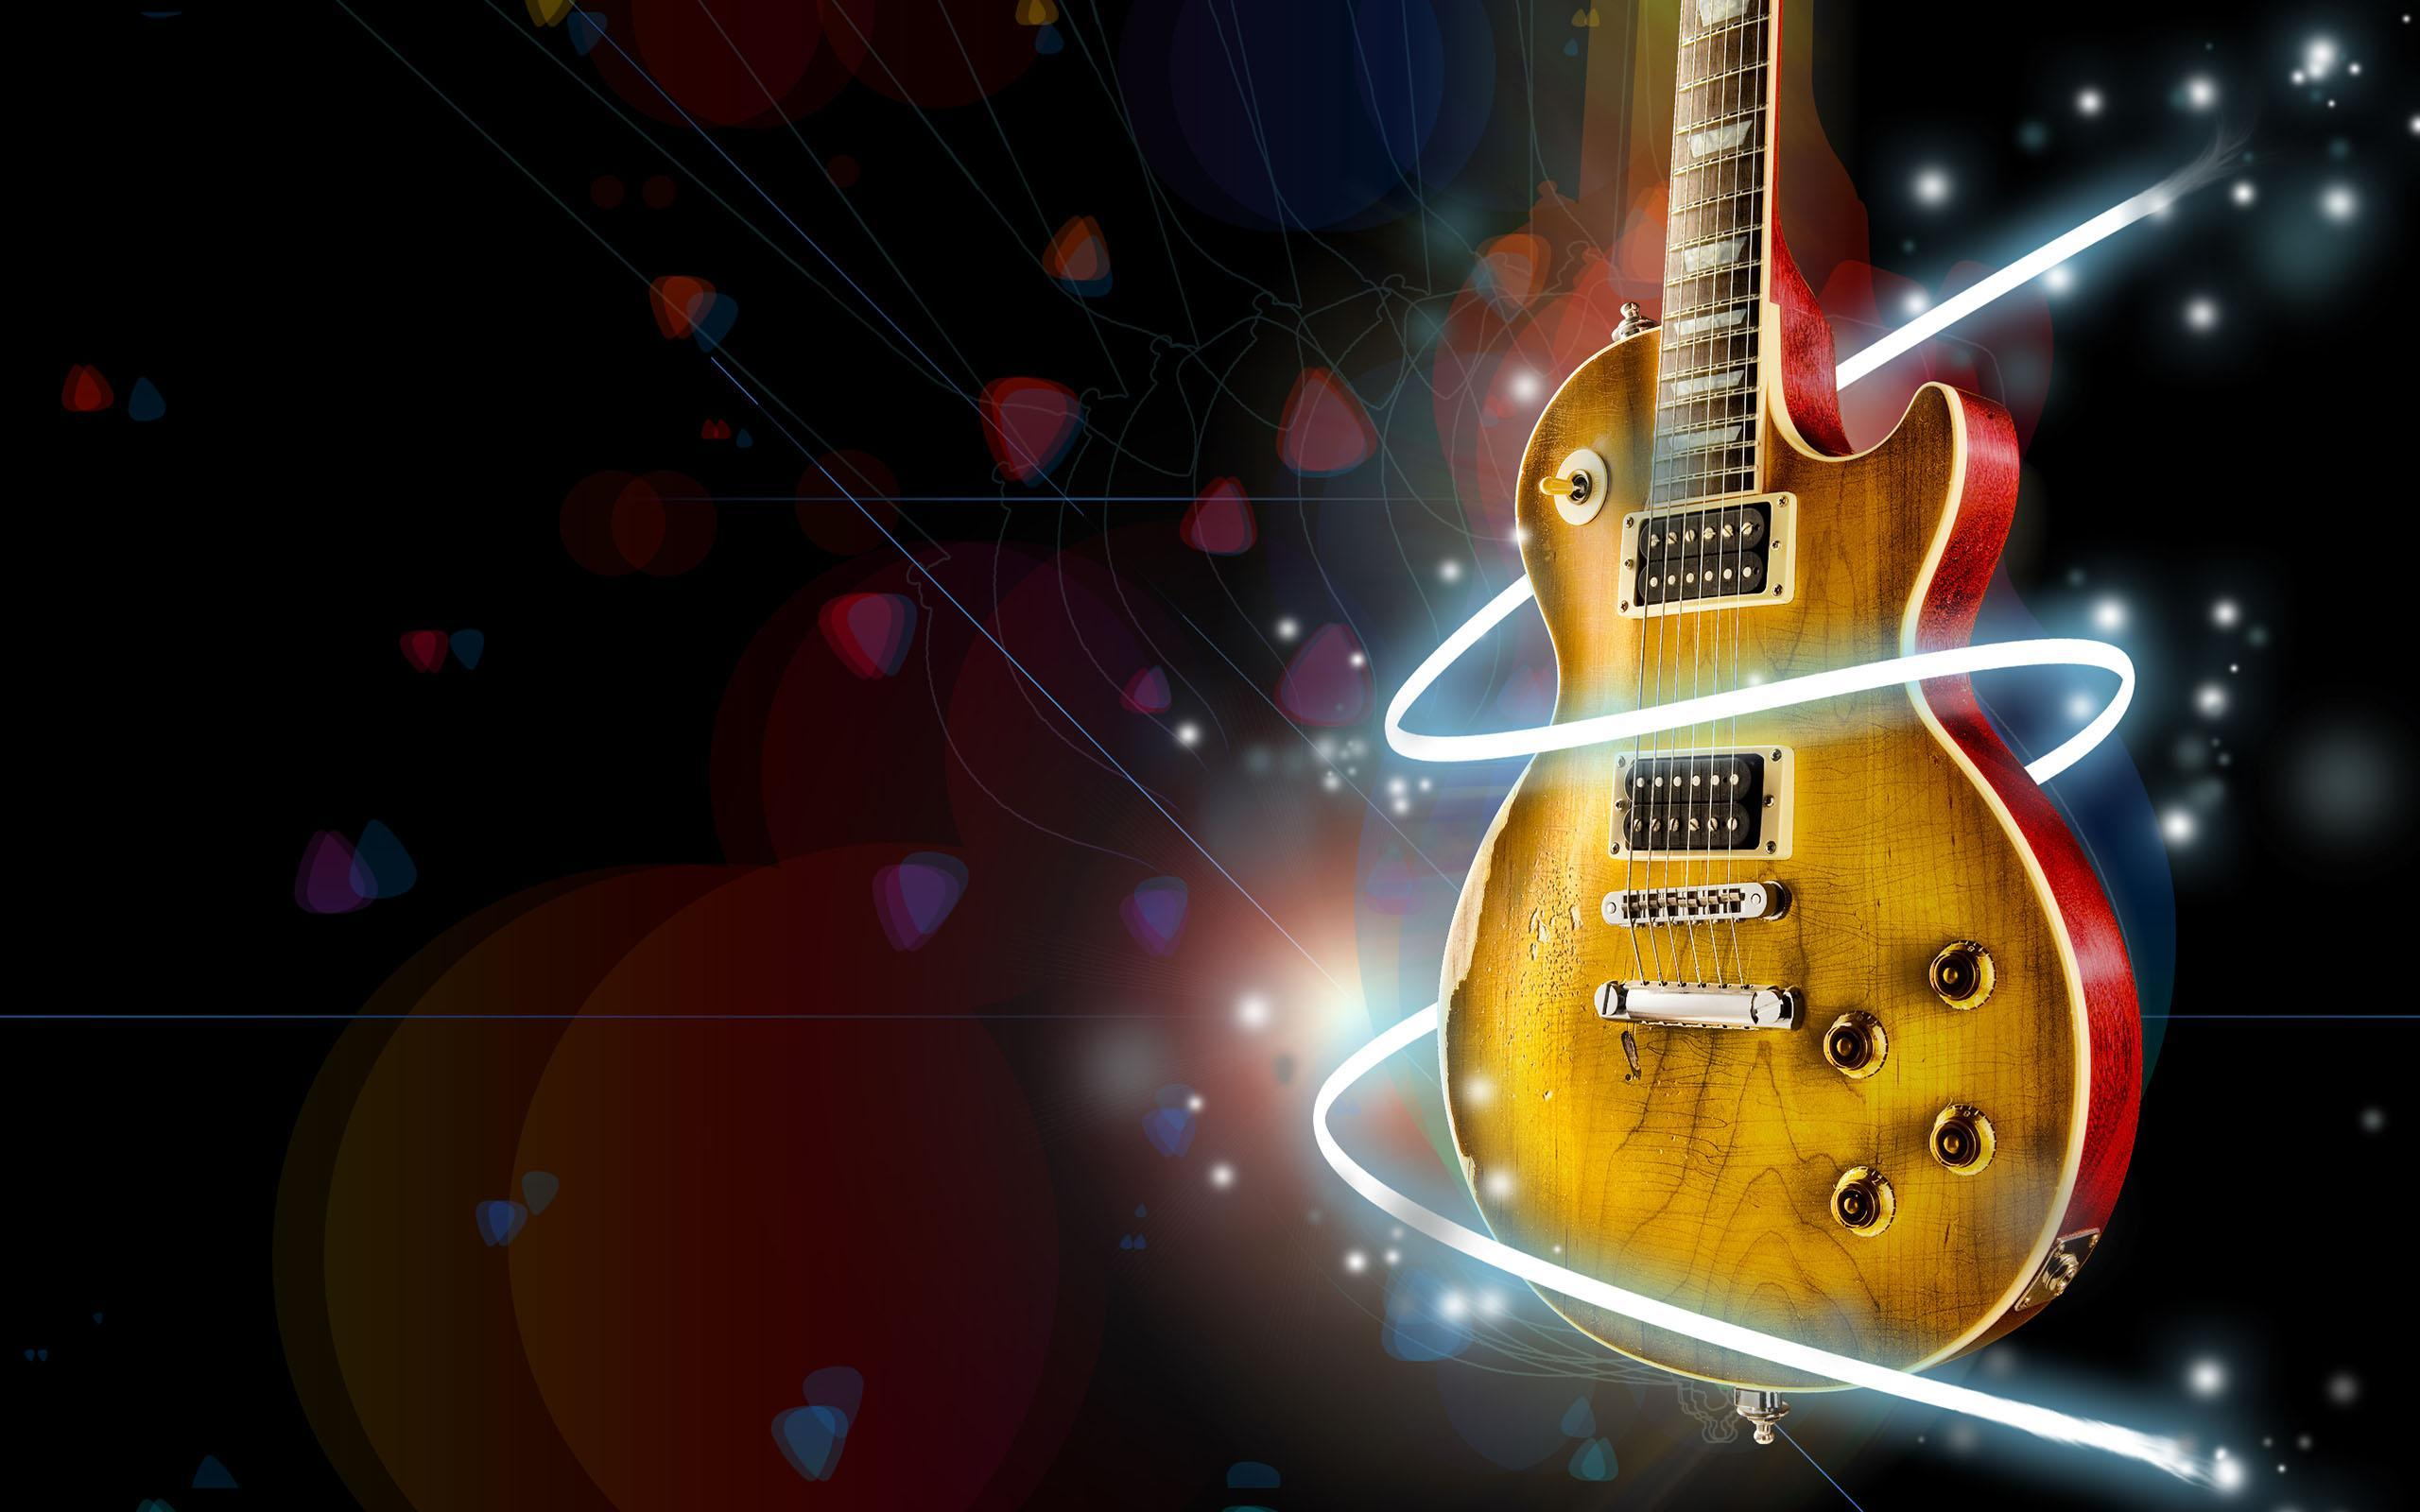 Guitar Wallpaper Hd Cool Moving Backgrounds For Android Apk Download